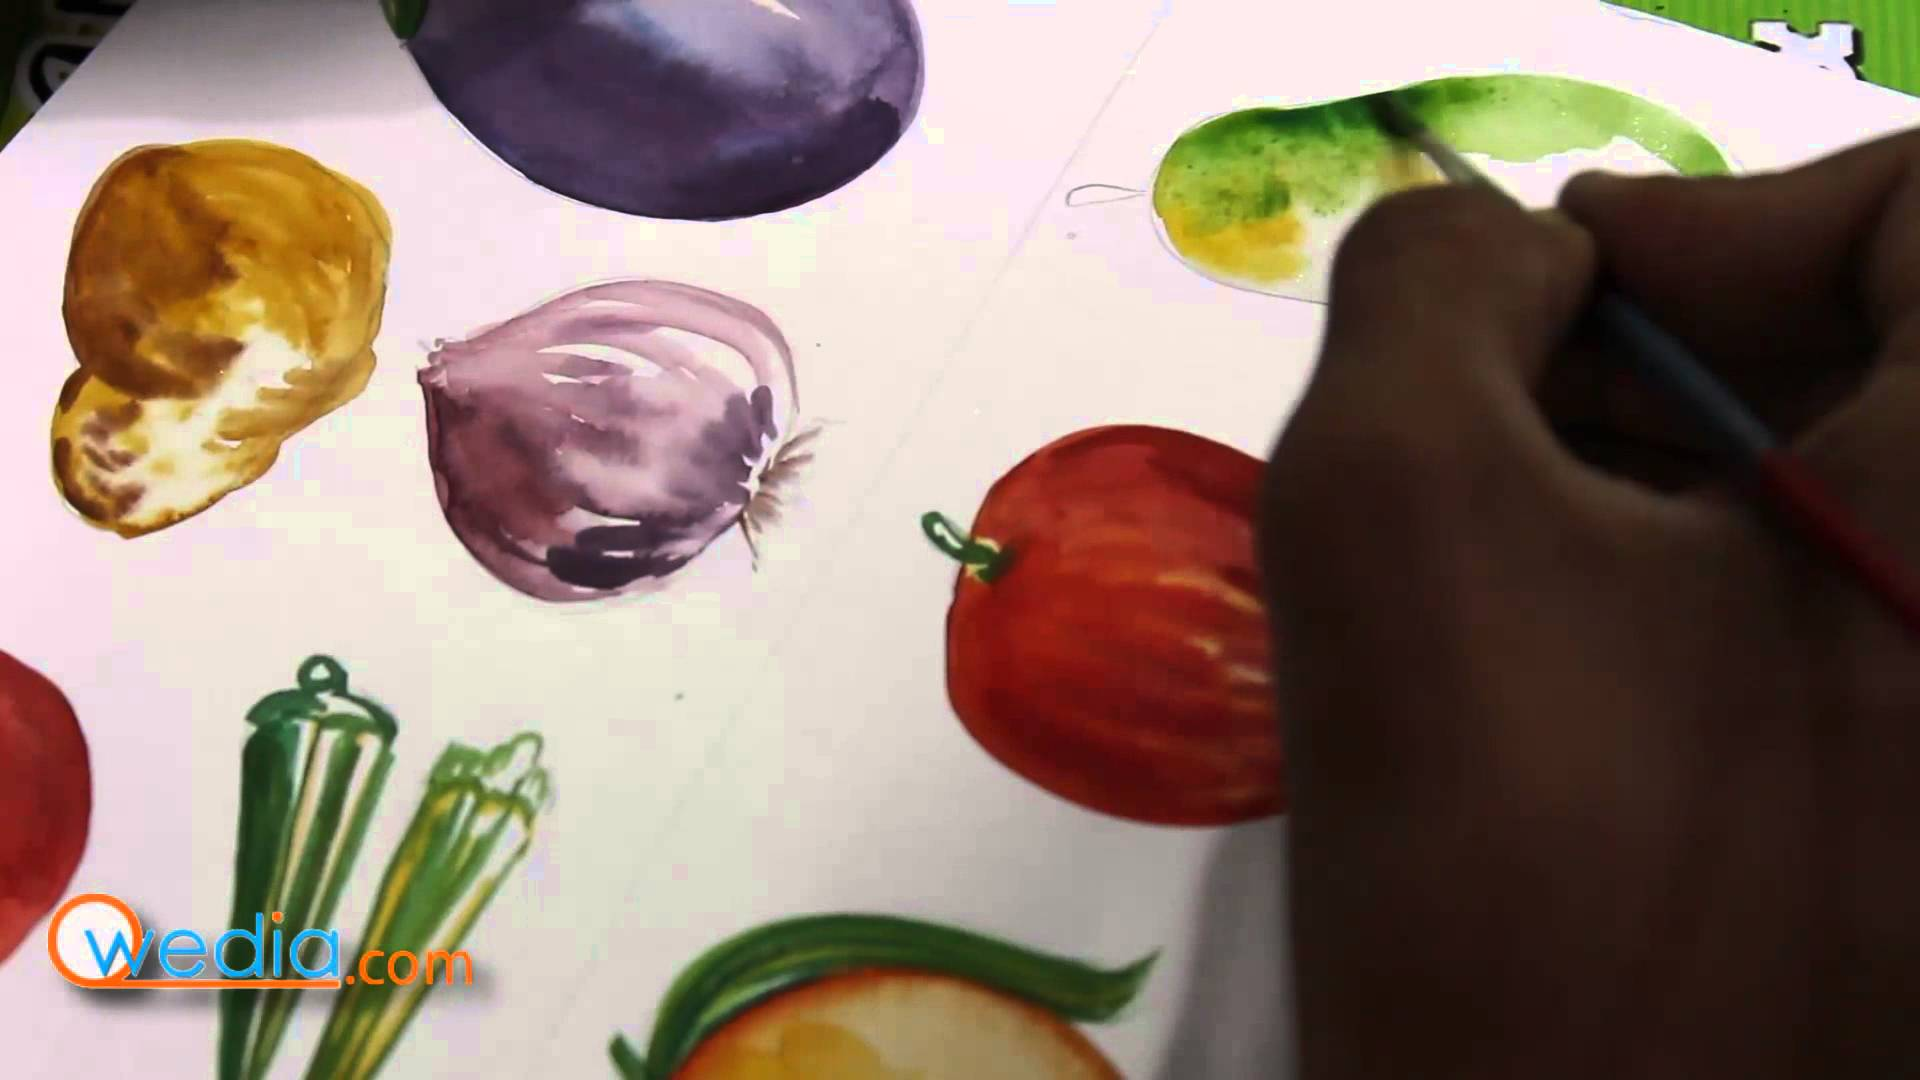 Drawn vegetables watercolor YouTube water fruits with color